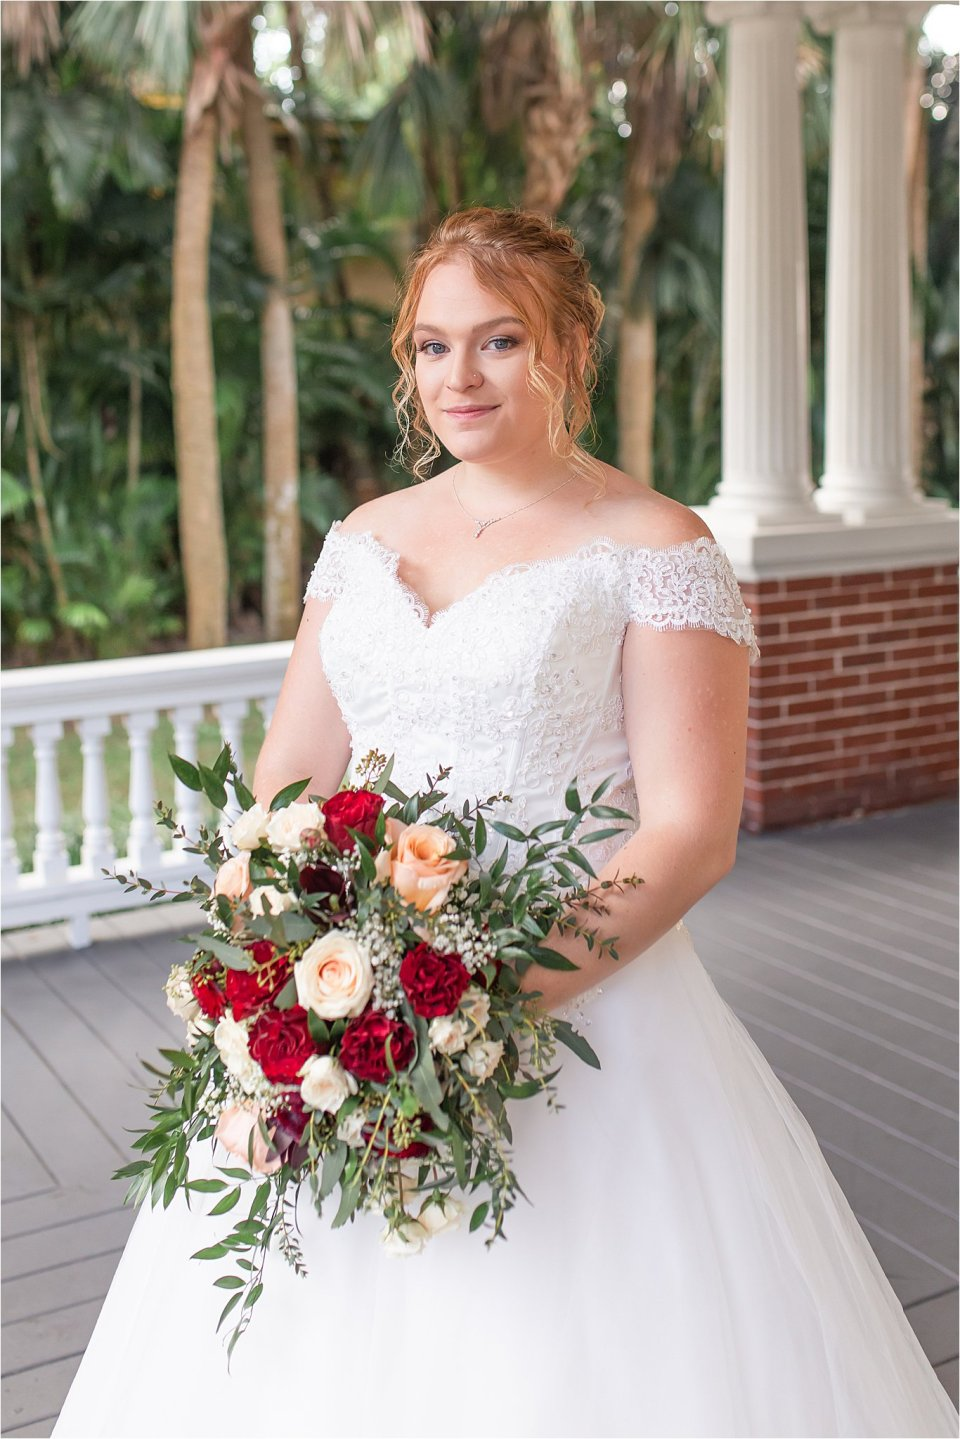 Bride outside on porch at Heitman House in downtown Ft Myers, Florida wedding